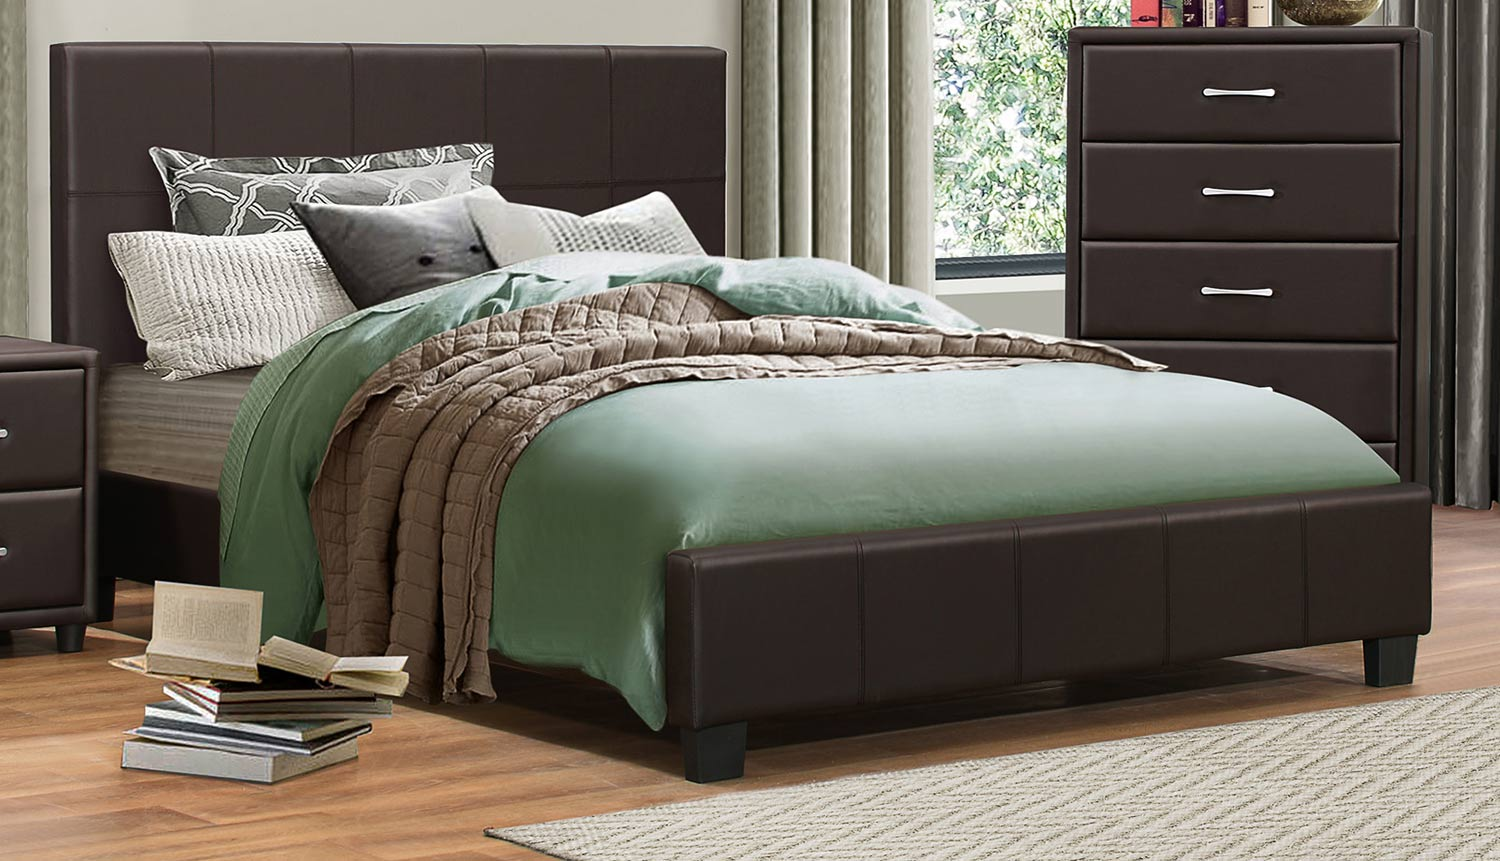 Homelegance Lorenzi Platform Bed - Dark Brown Vinyl